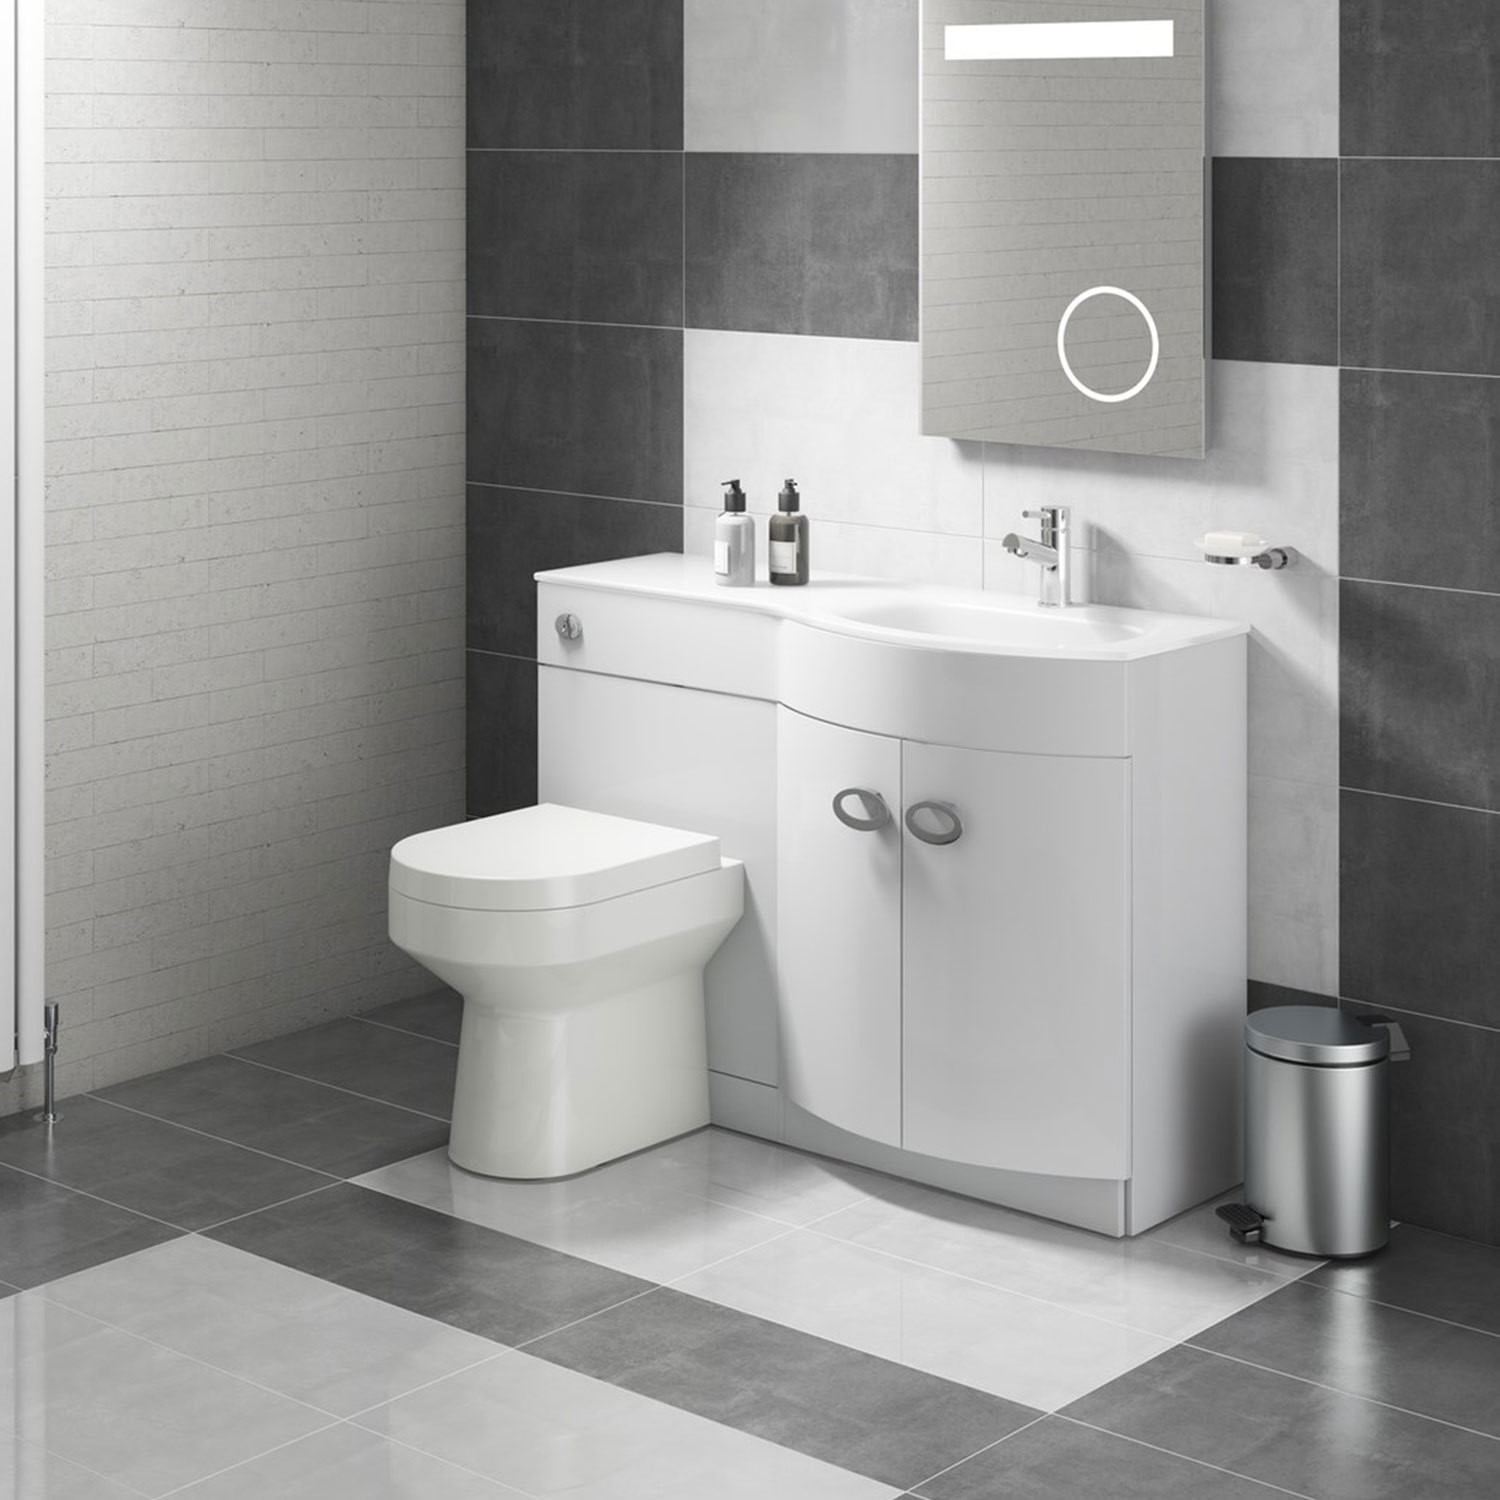 General Furniture Curved White Right Hand Bathroom Vanity Unit & Glass Basin - Without Toilet